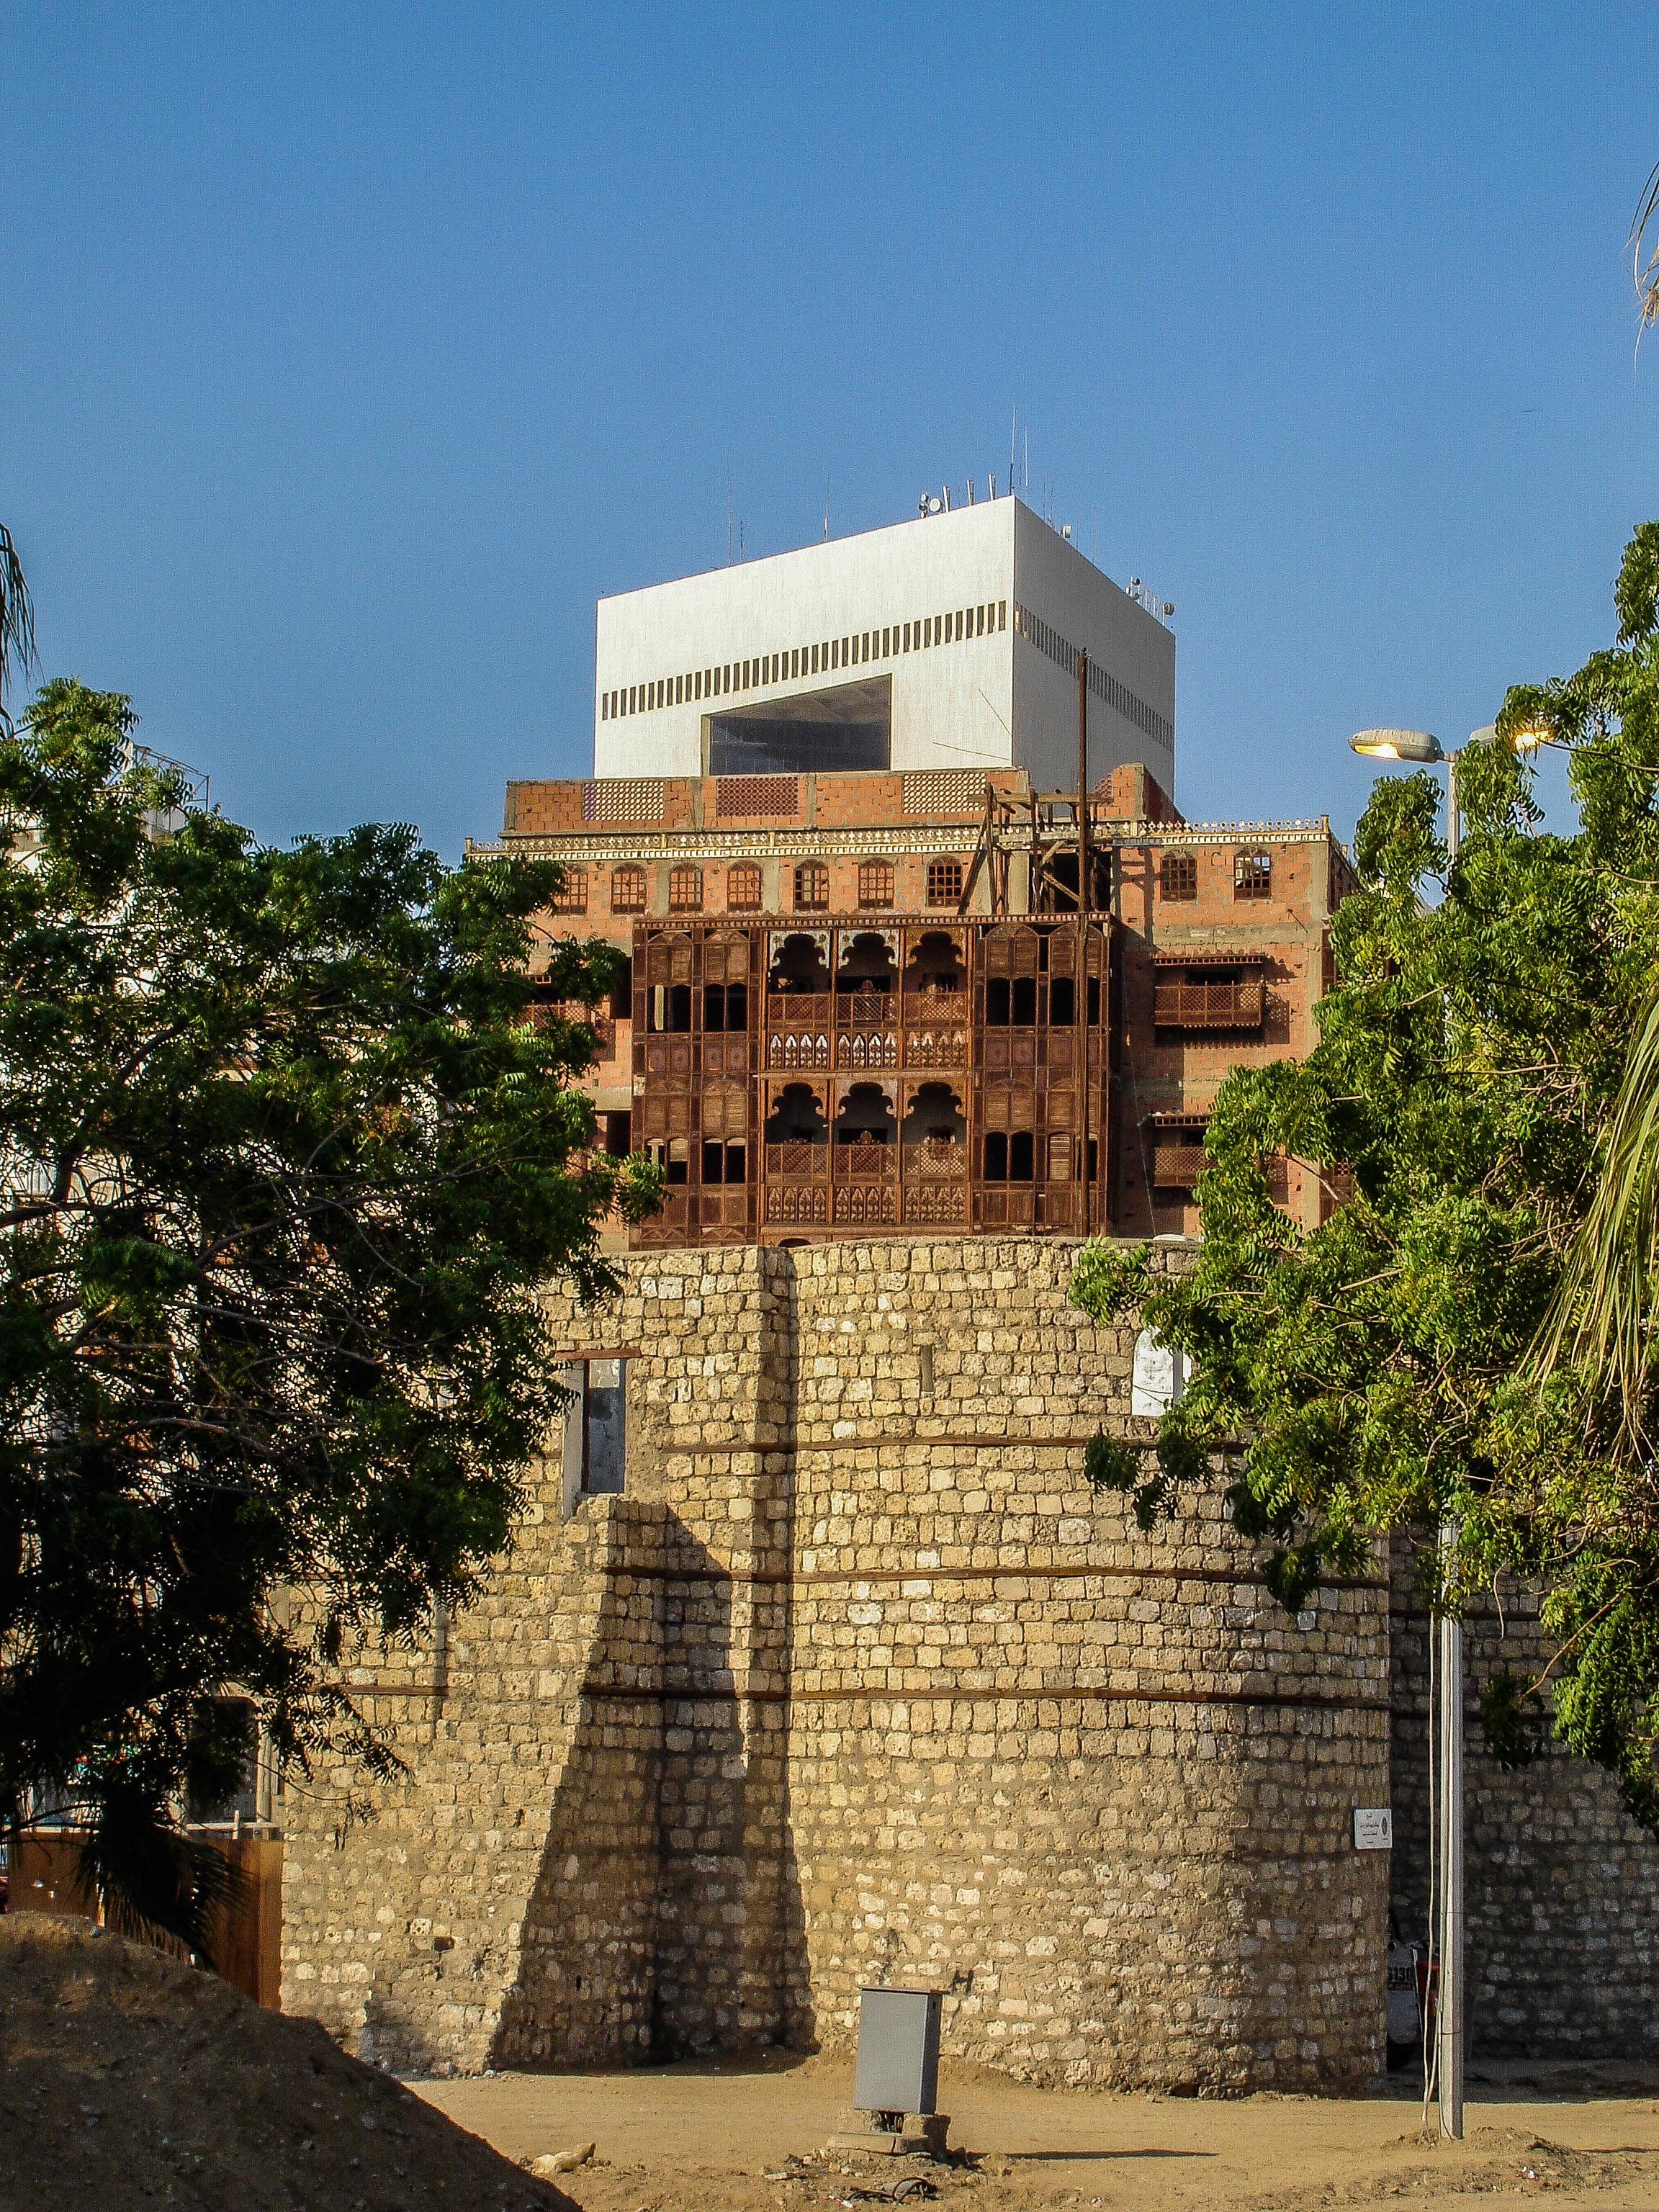 Three eras of Jeddah's history, the ancient walls, Al-Balad, and the modern city (photo: Andy Conder)